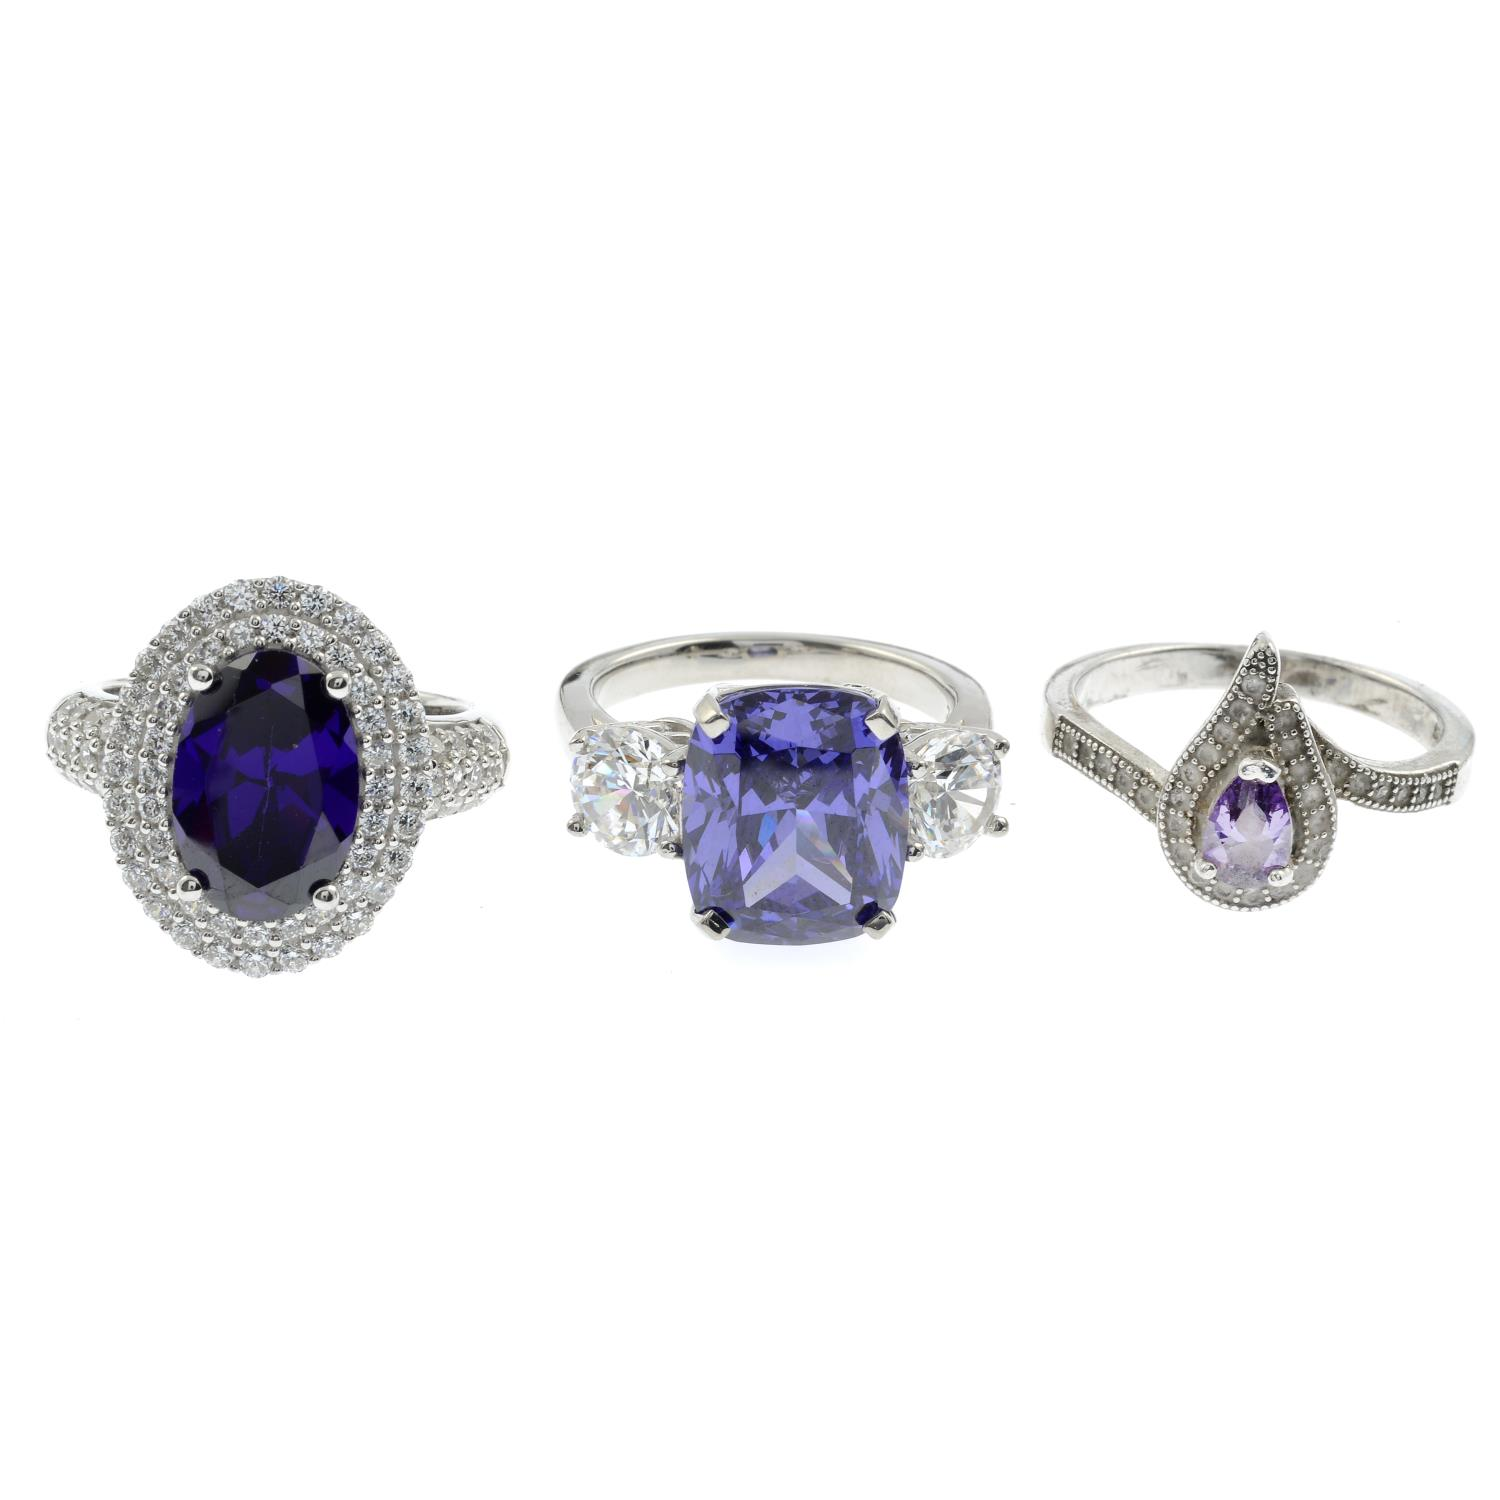 A selection of mainly gem-set rings, to include a three stone cubic zirconia ring.